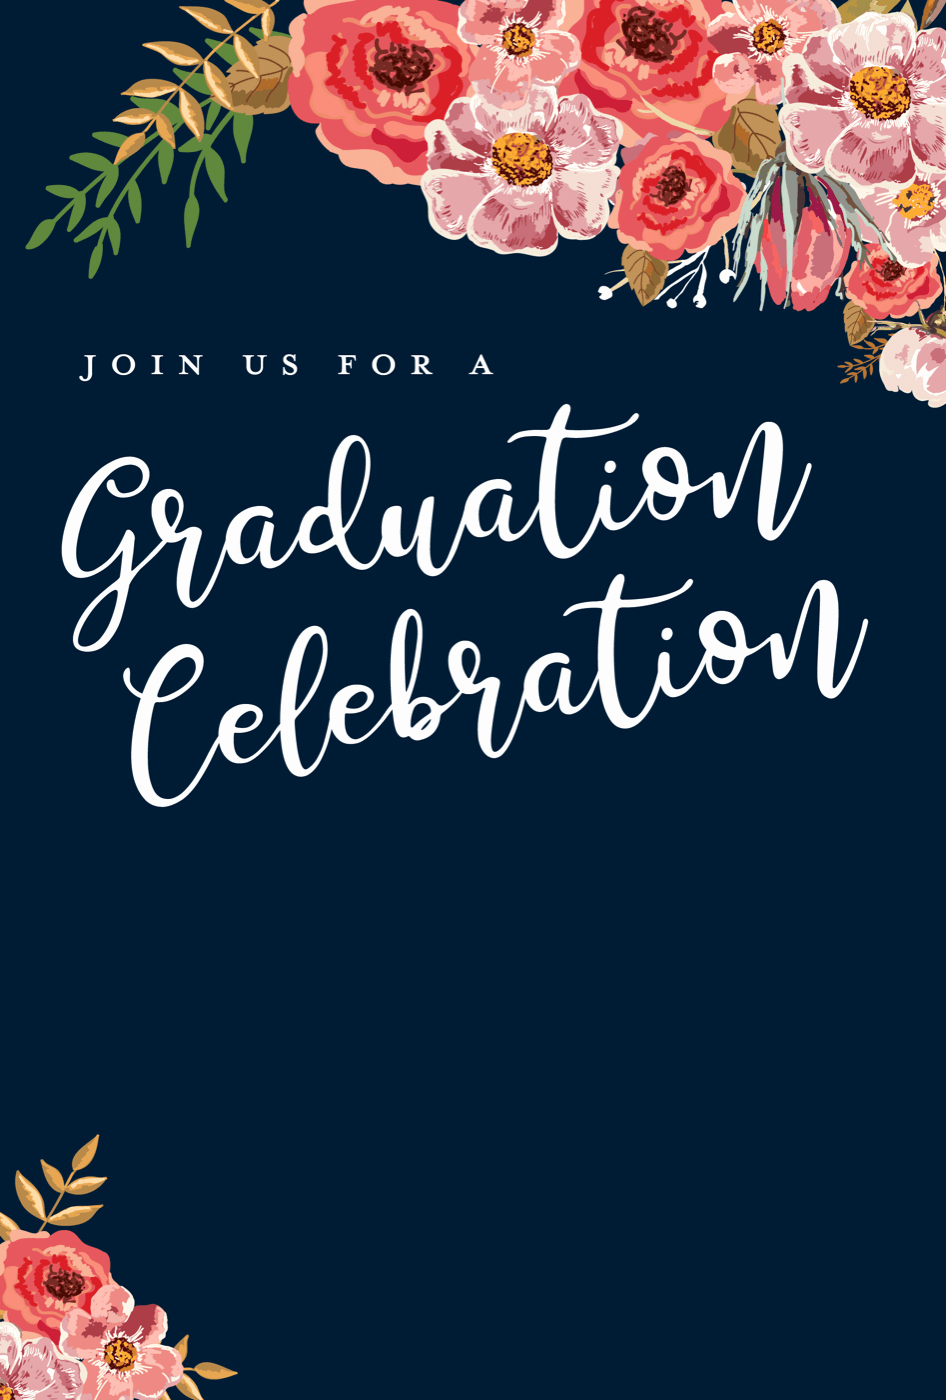 Graduation Invitation Templates Free Download New 5 Editable Graduation Party Invitation Templates Tips